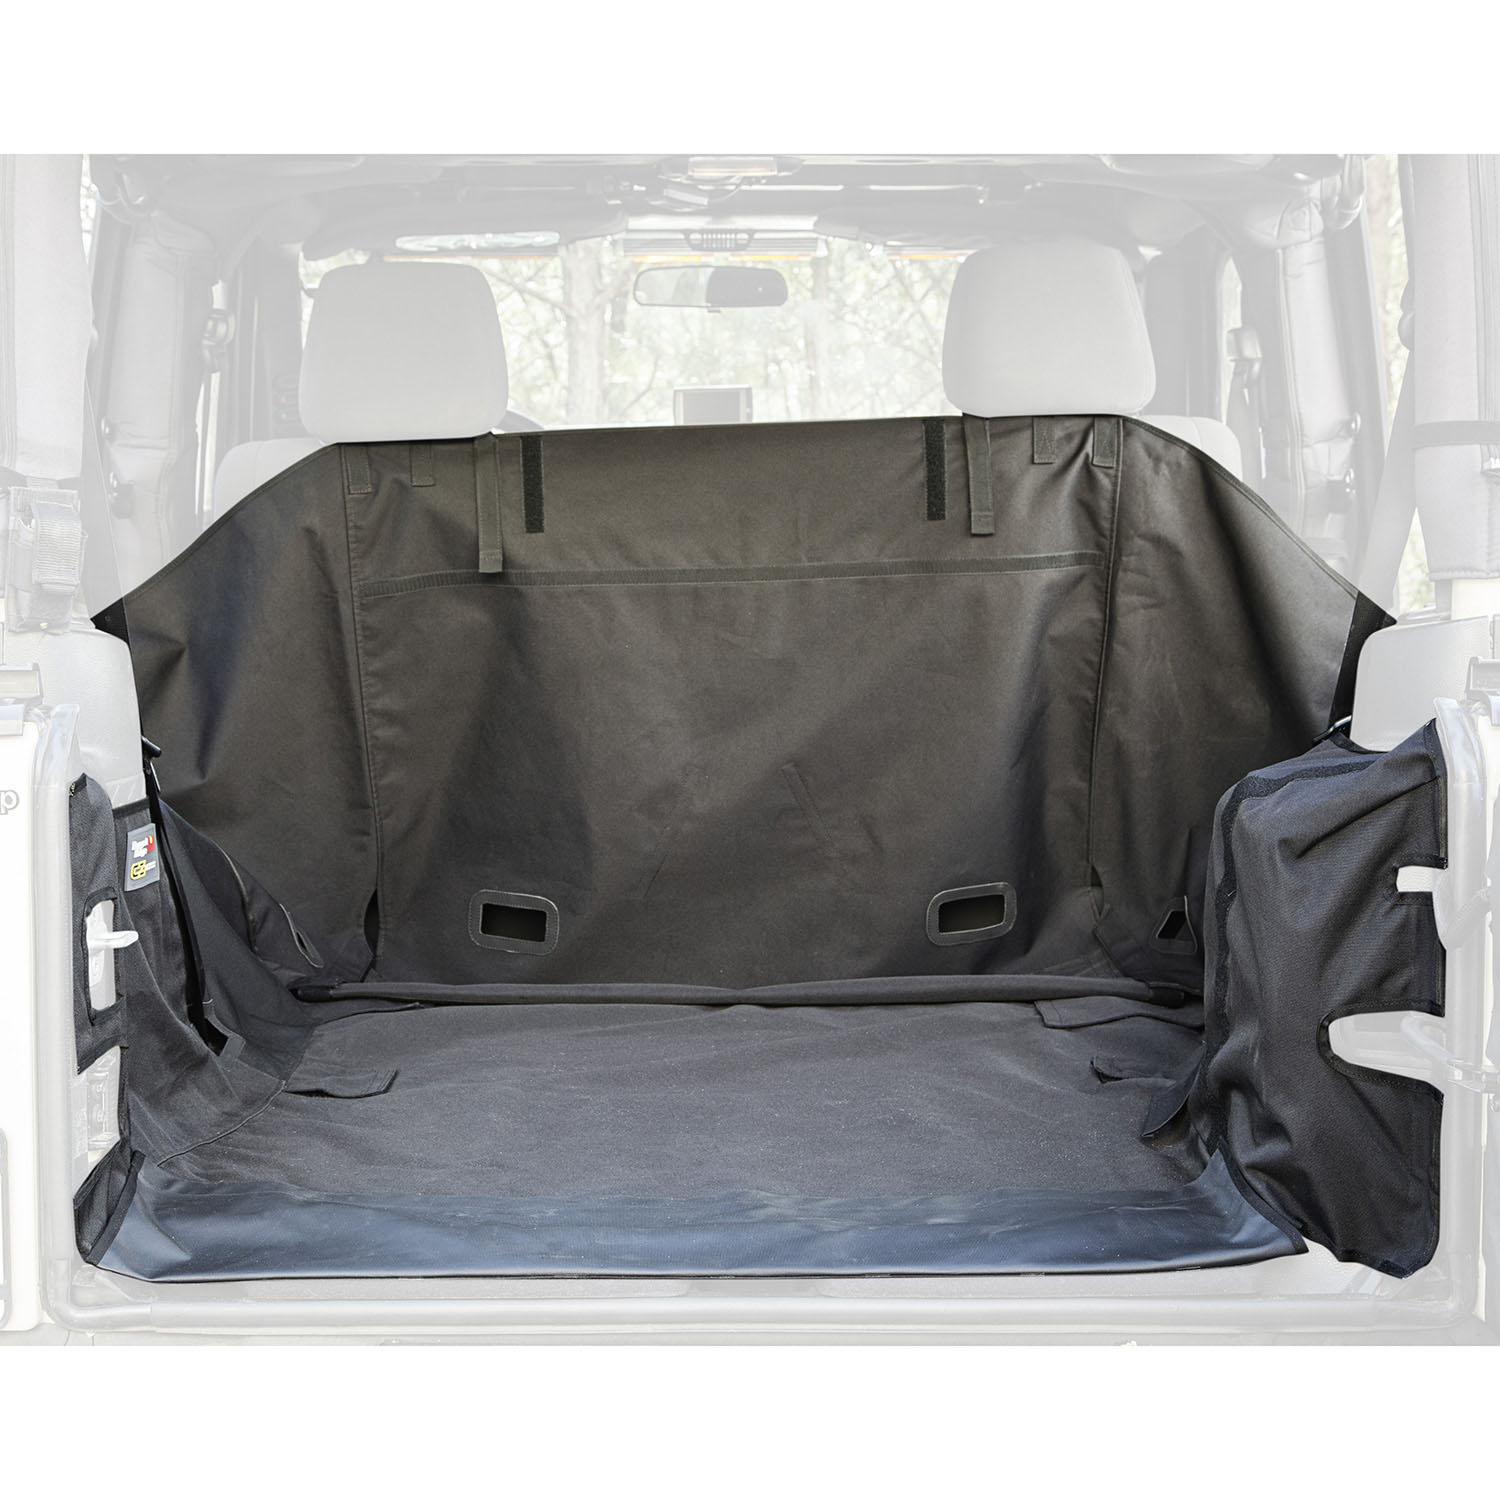 C3 Cargo Cover Subwoofer 07-14 Jeep Wrangler JK 2 Door Get FREE C3 tailgate Cover (13260.09) with JK C3 Cargo Cover